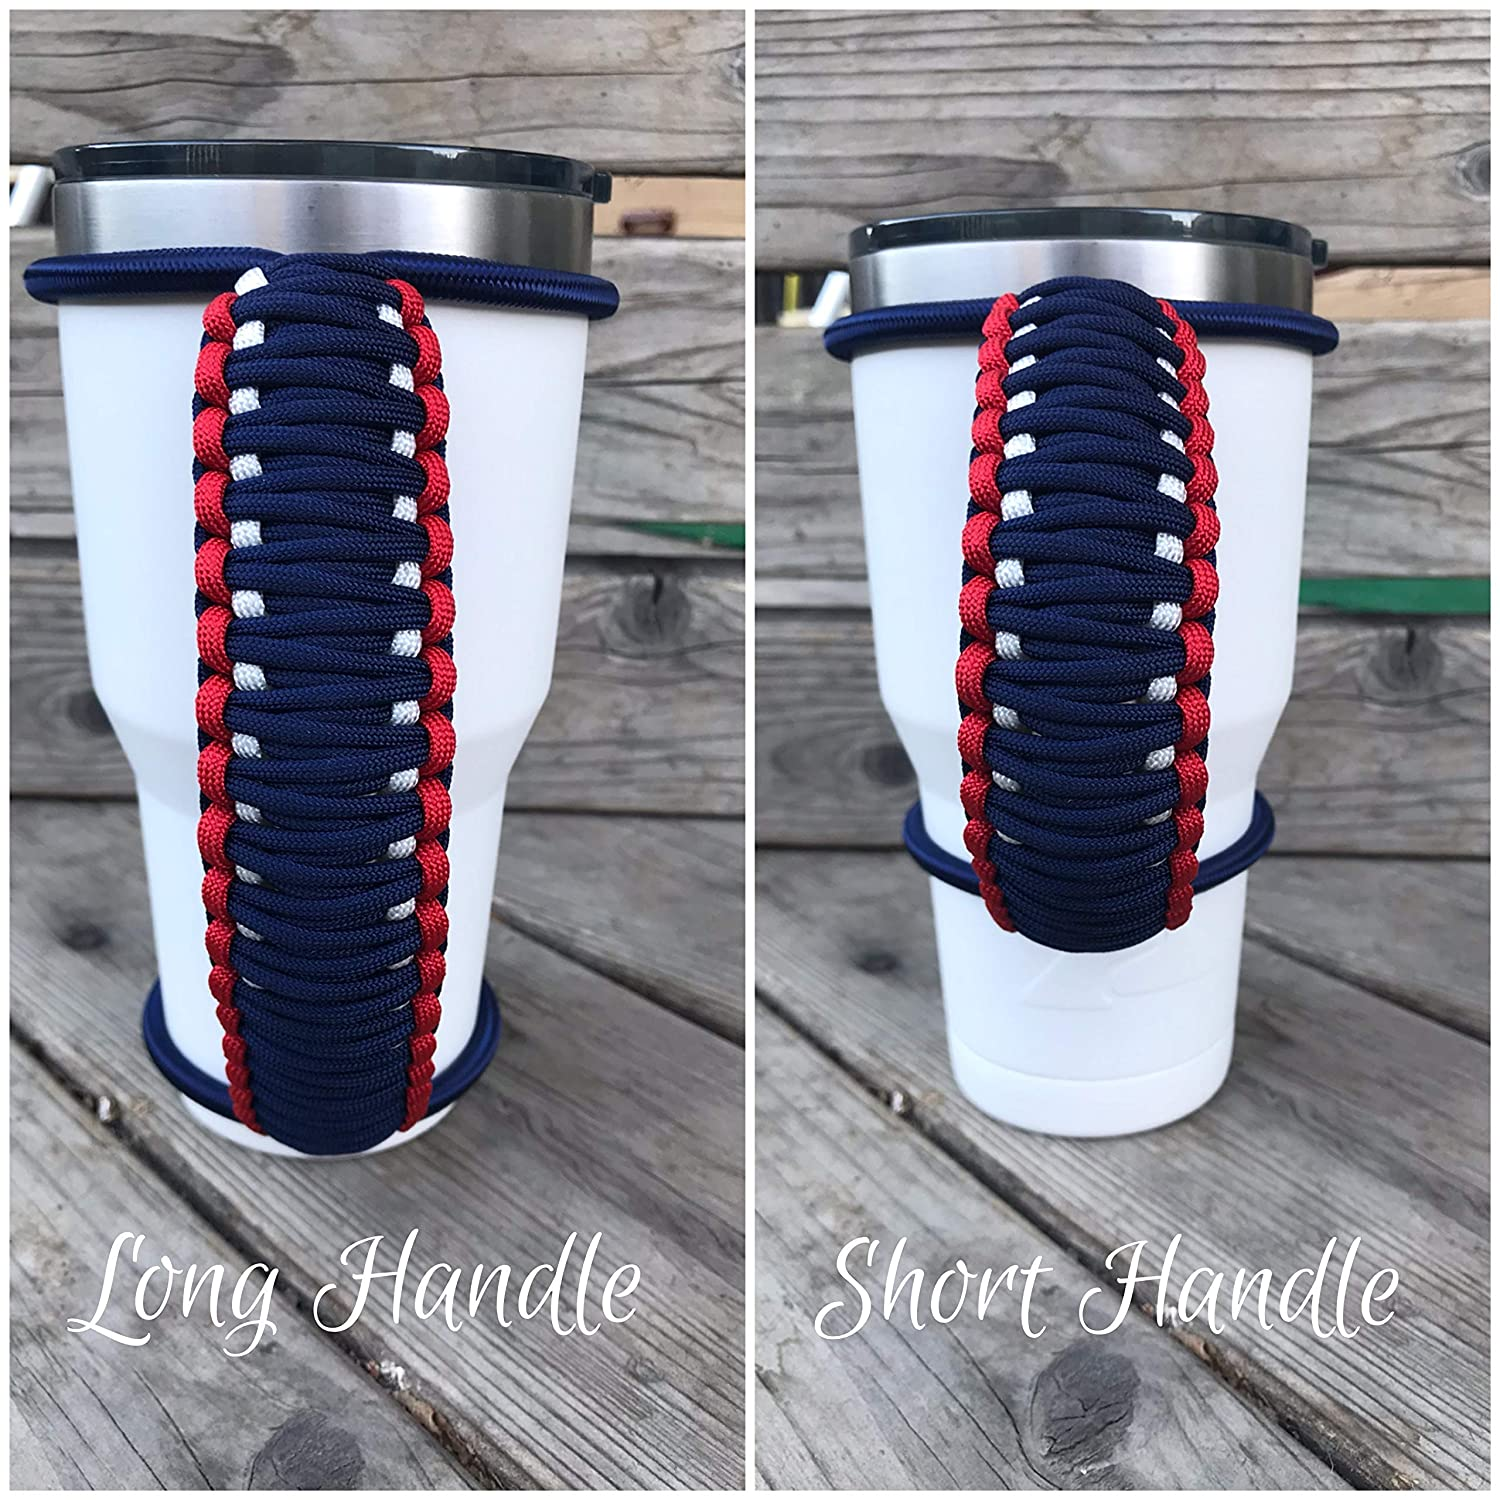 Dark knight metallic reflective tracers handle handmade colored bungee paracord strong durable handle for custom and insulated tumblers made to fit most 20 30 32 40 oz